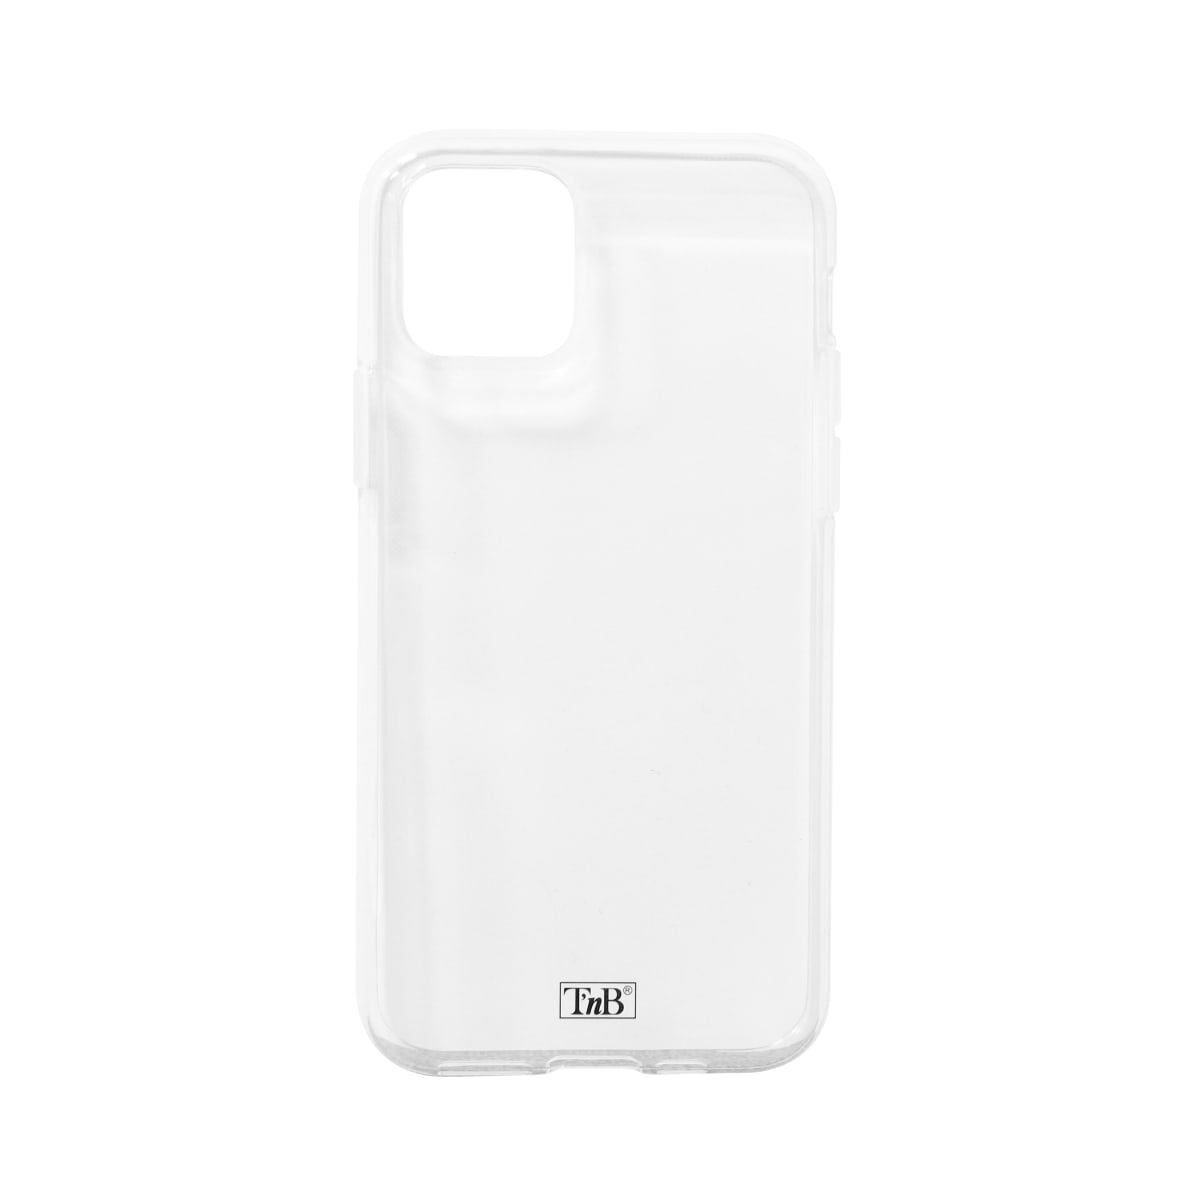 Soft case for iPhone 11 Pro